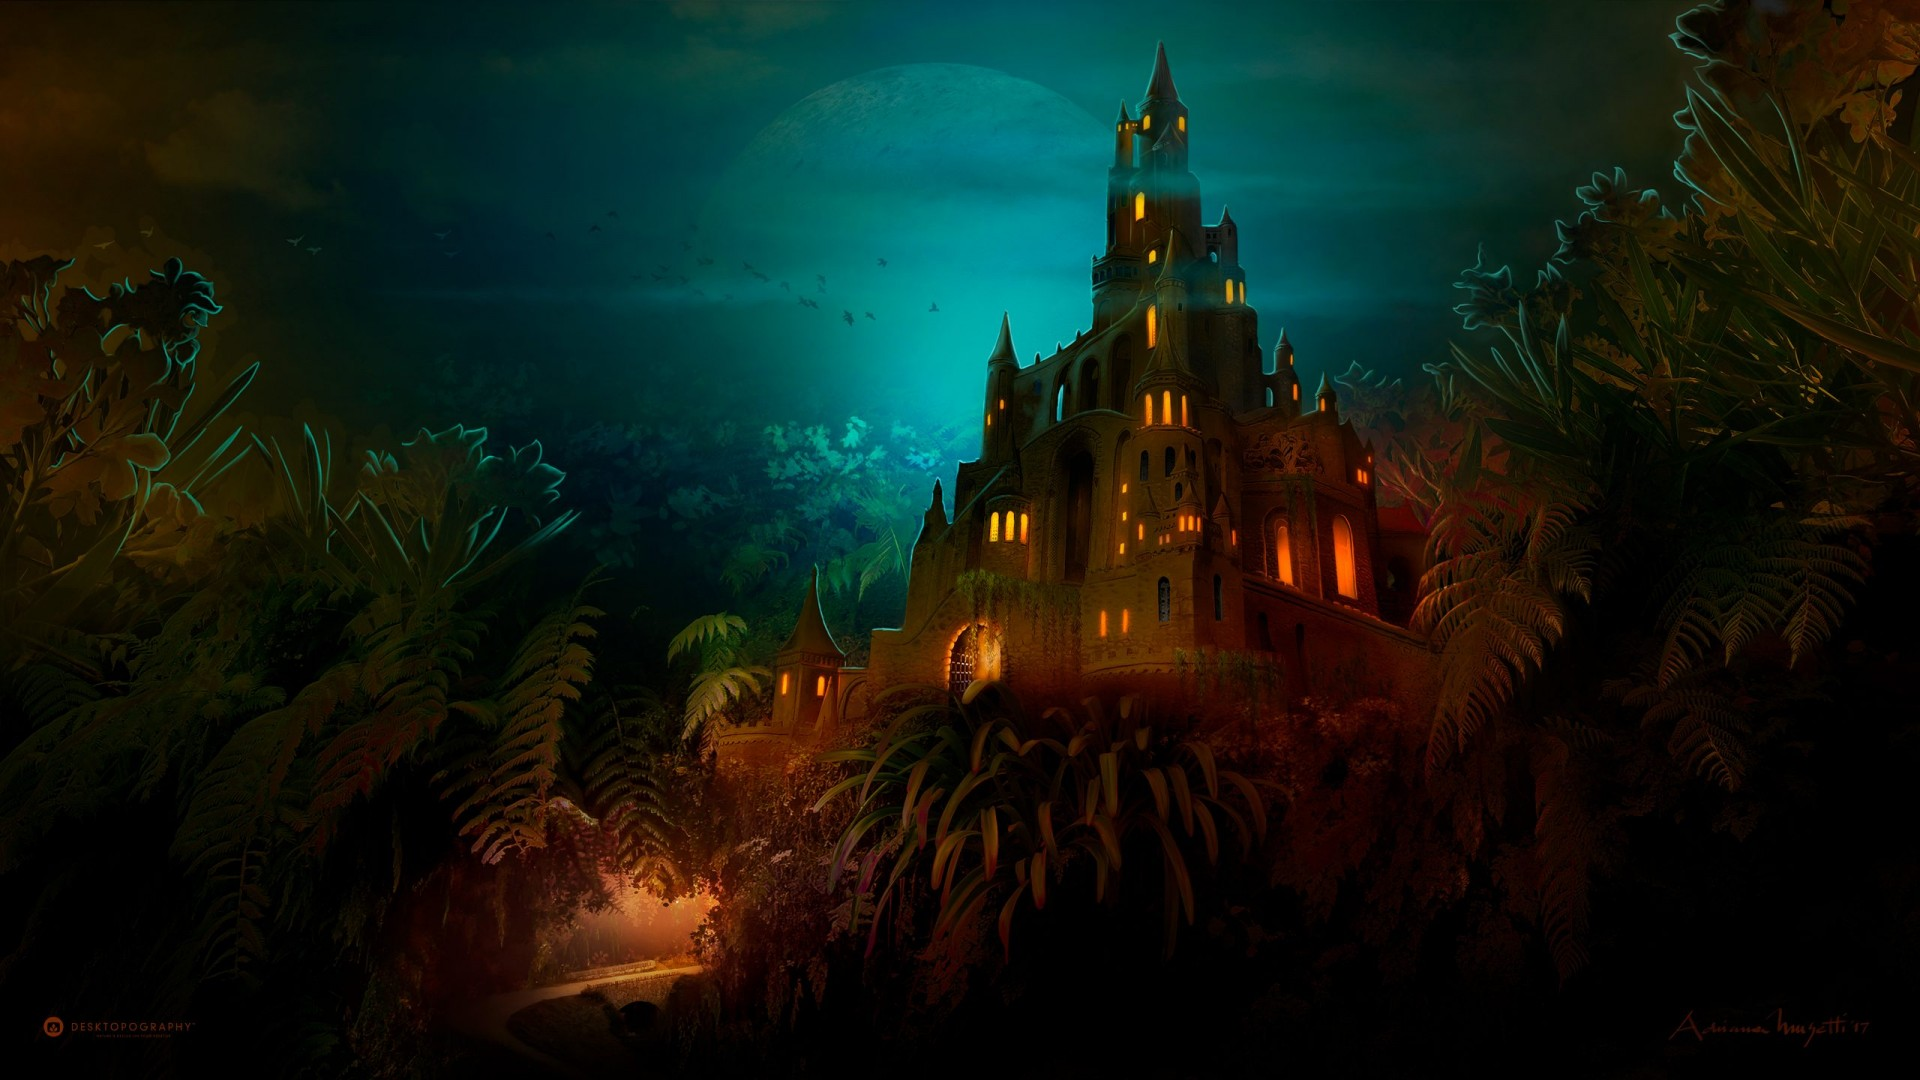 Free Cute Wallpaper For Iphone 4 Lilliput Castle Dark Night Wallpapers Hd Wallpapers Id